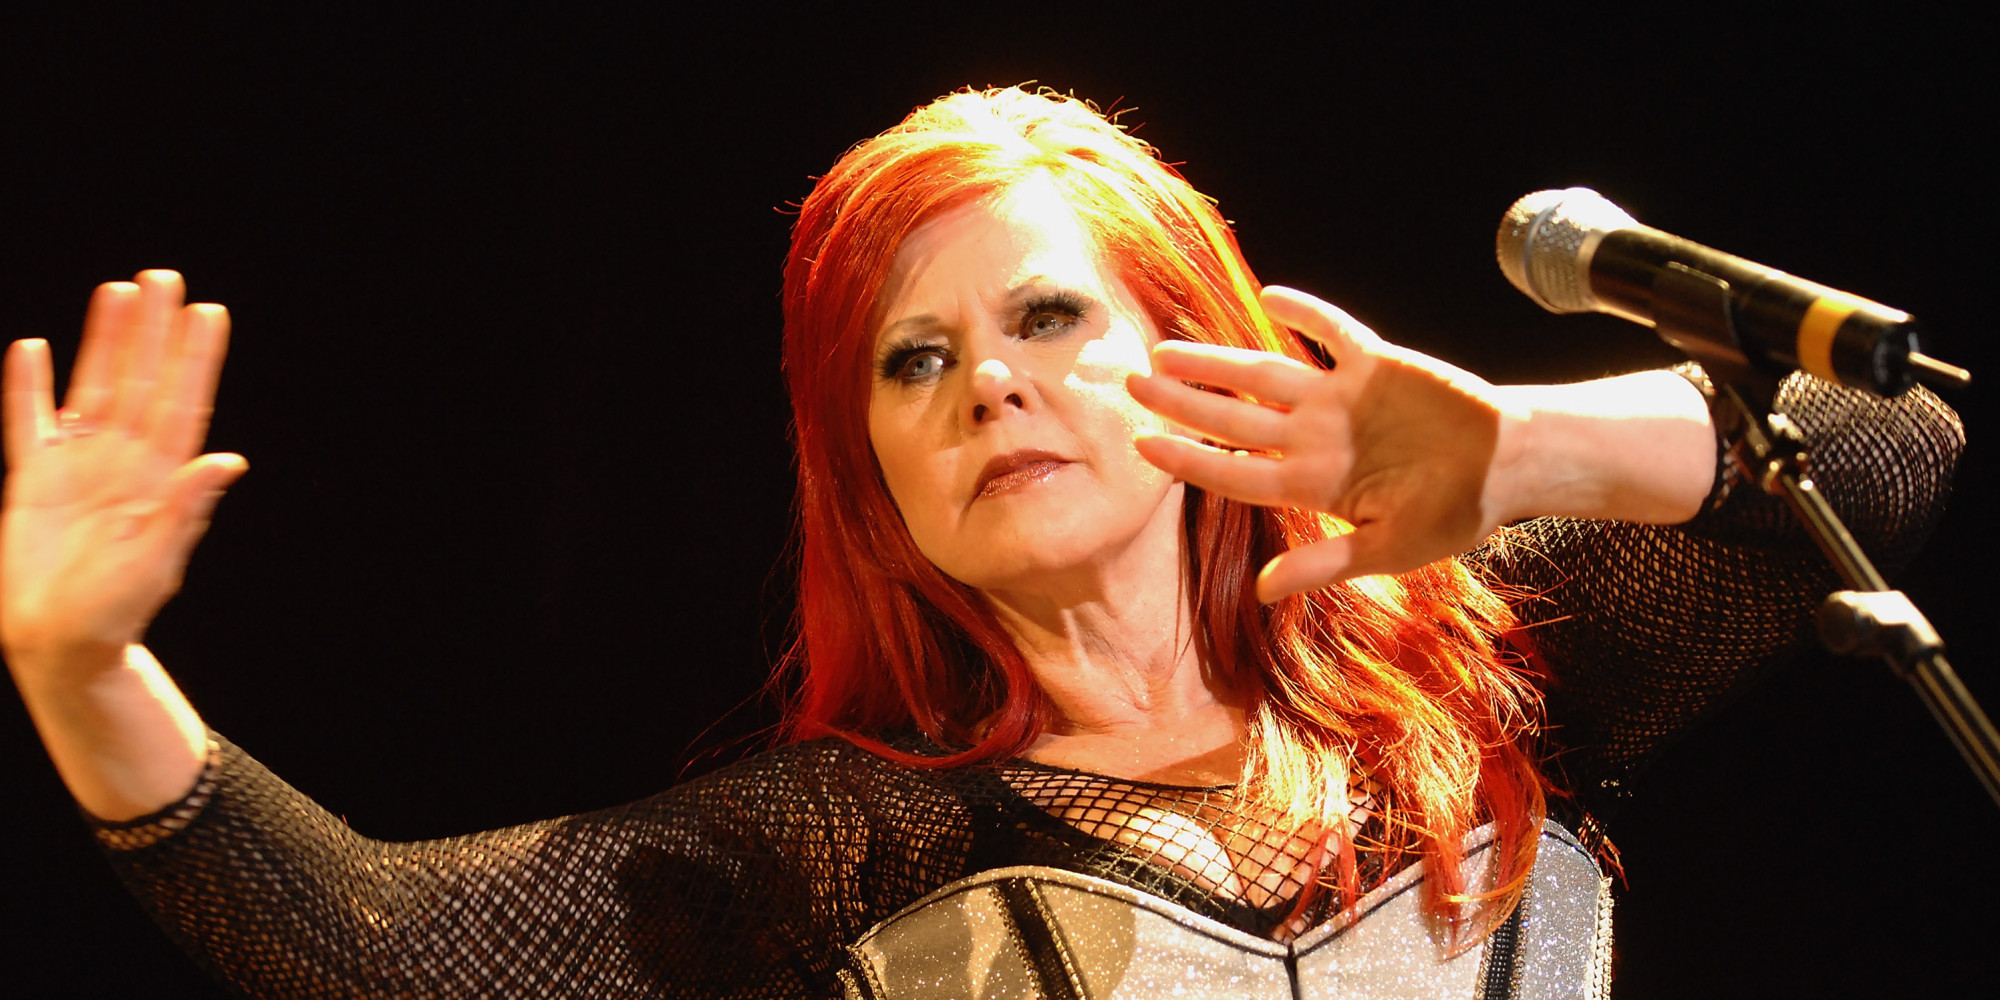 An Open Letter to Kate Pierson, From a Trans Woman and Fan, About Your ...